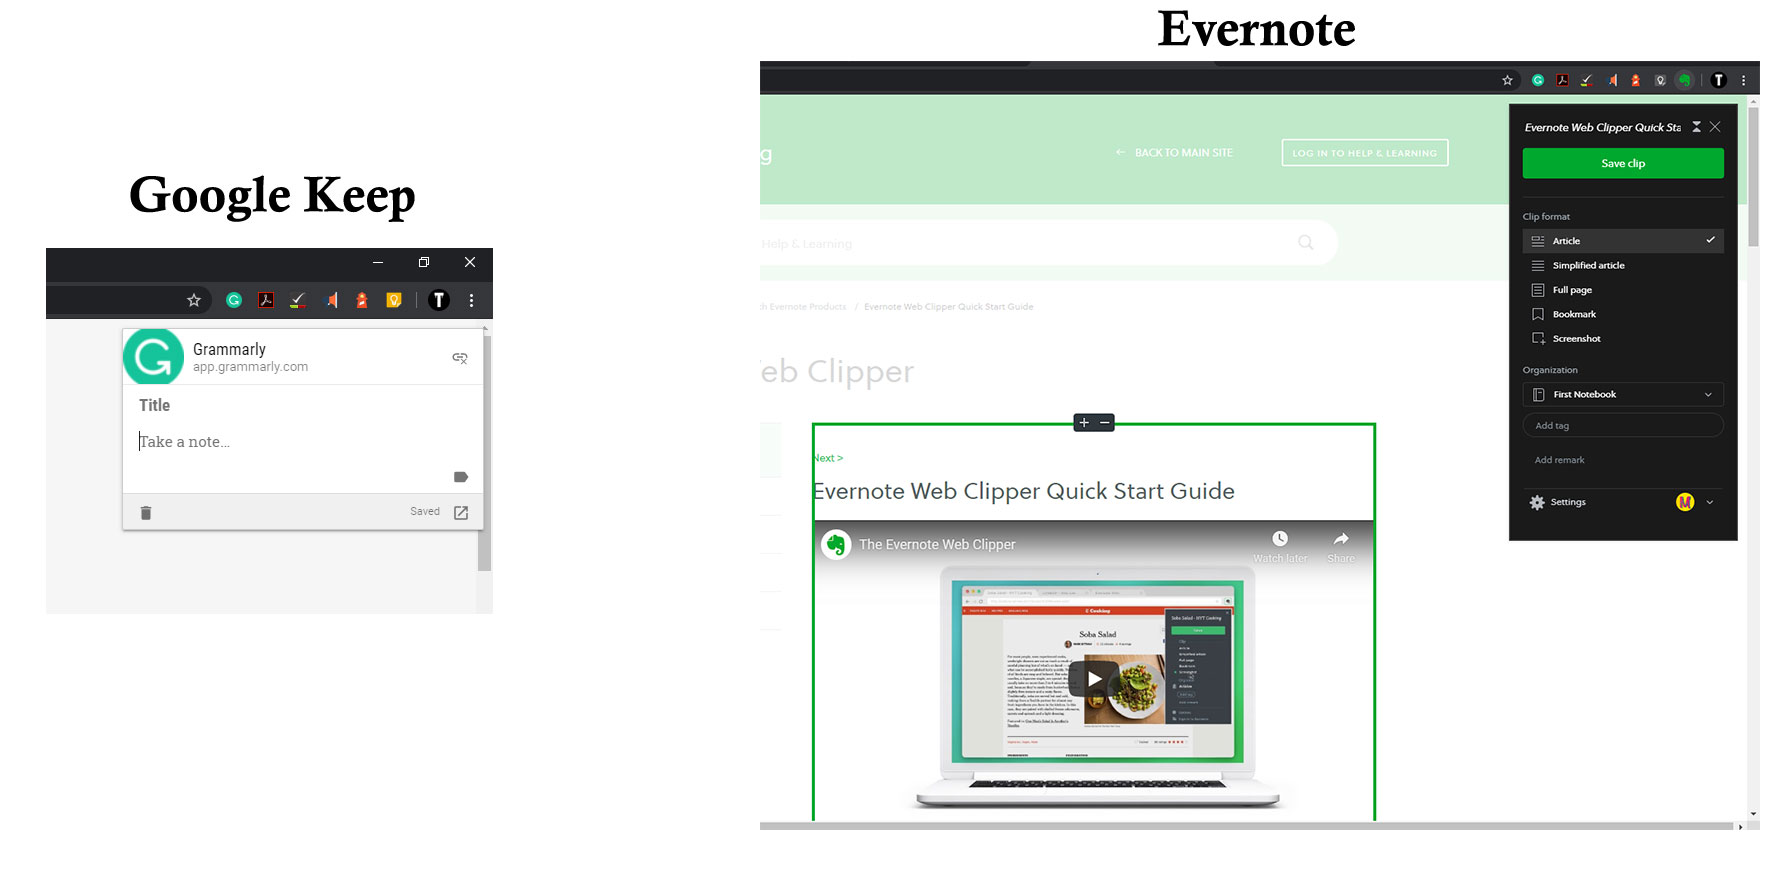 Extensions - Google Keep vs Evernote